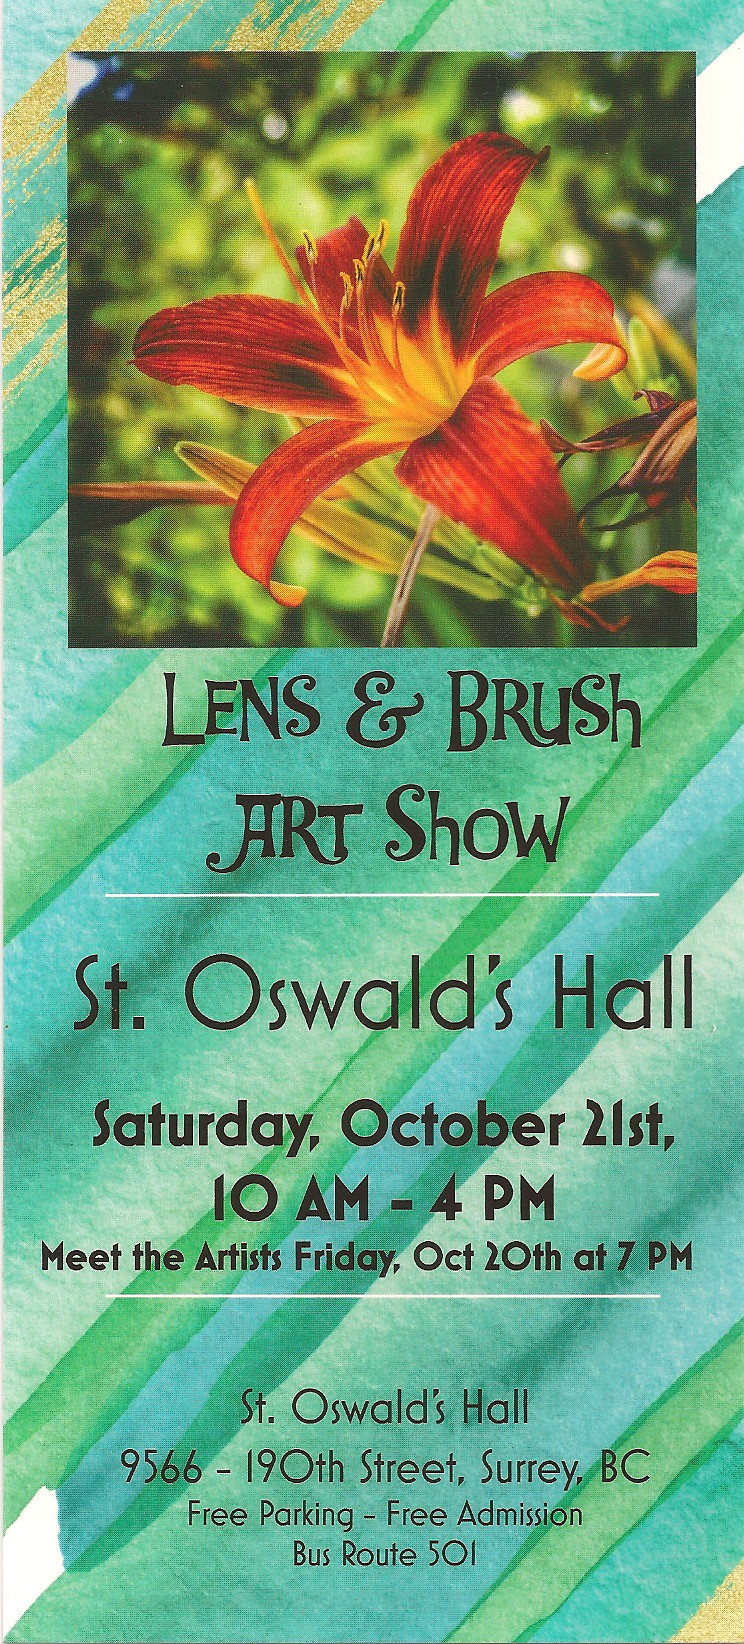 lens and brush art show